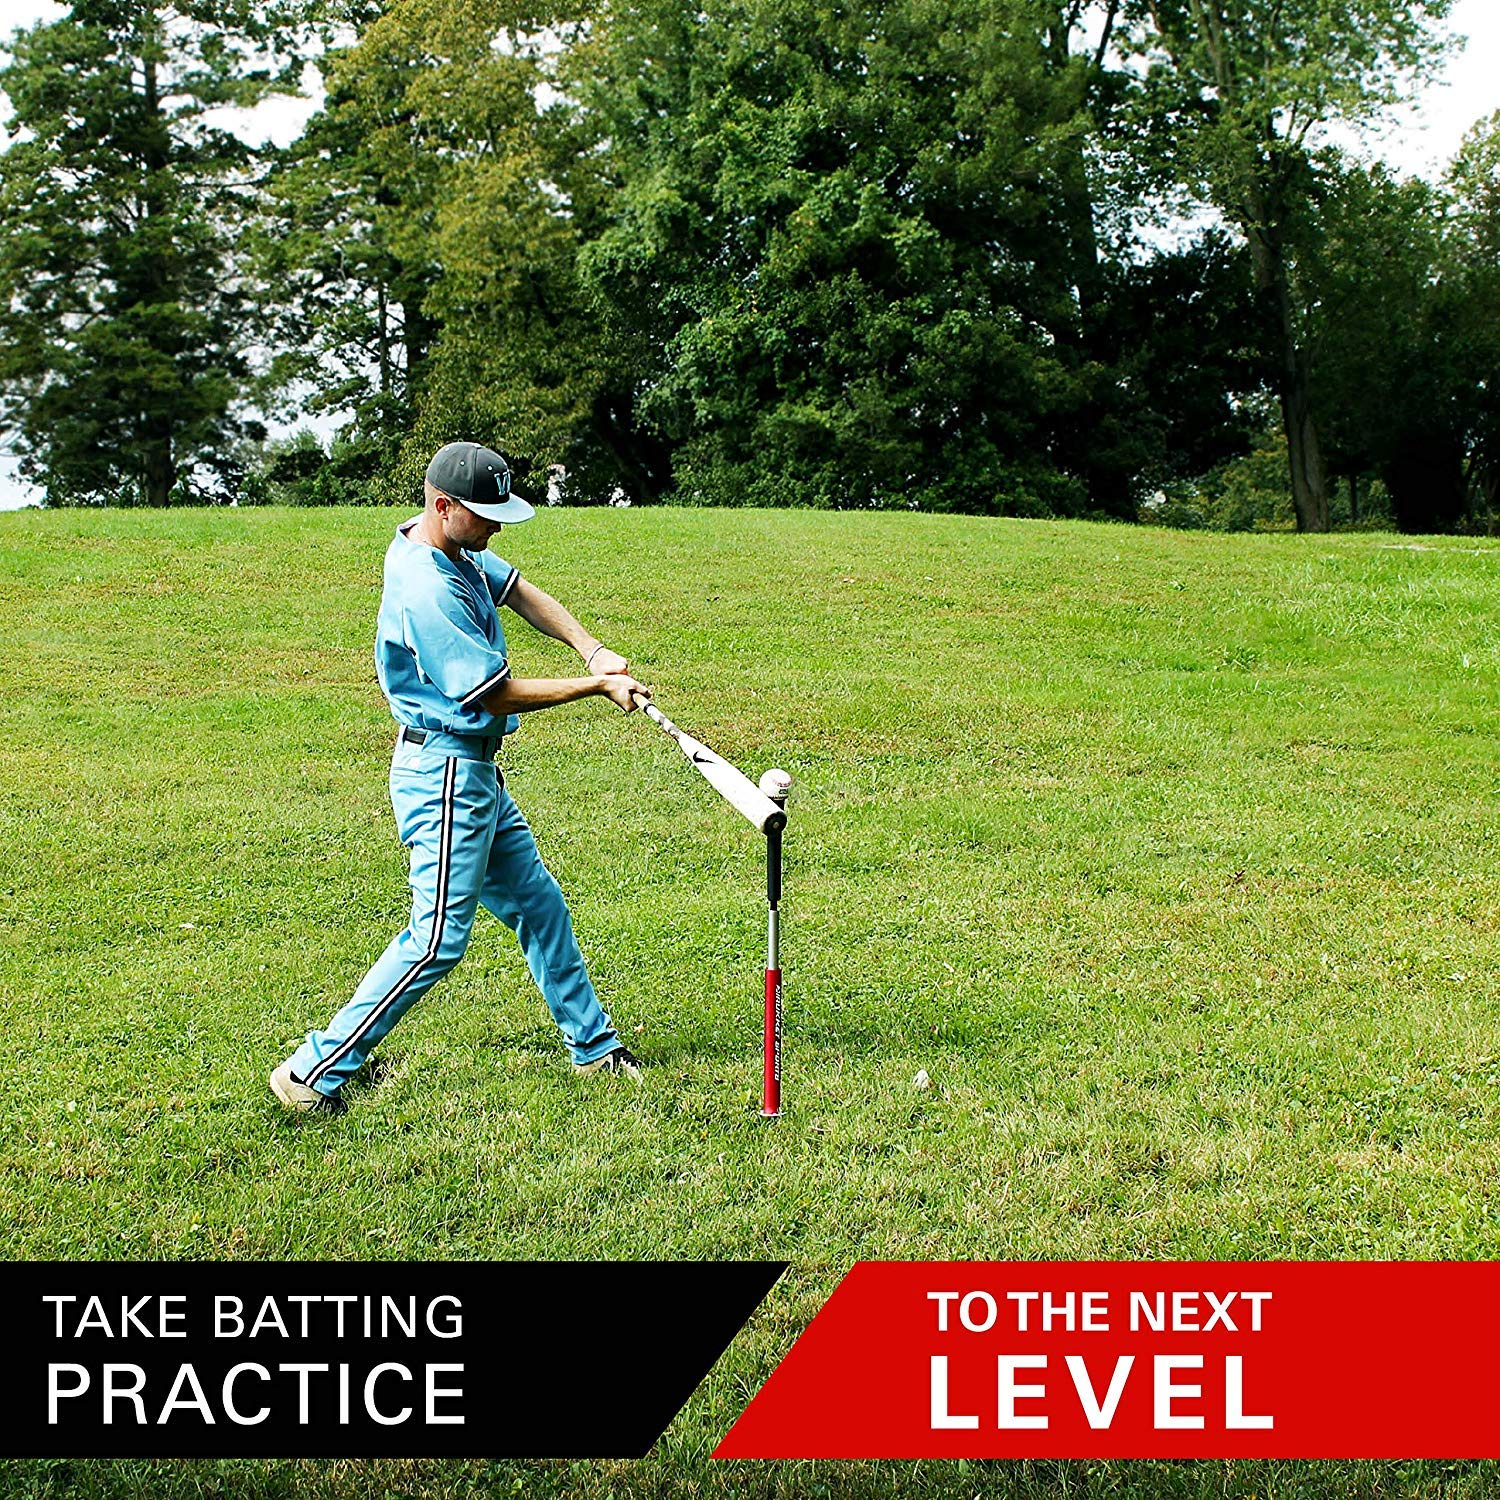 Rukket Baseball//Softball Batting Tee Pro Professional /& Adjustable Equipment with Carry Bag Portable /& Heavy Duty Practice Tees for Indoor /& Outdoor Training